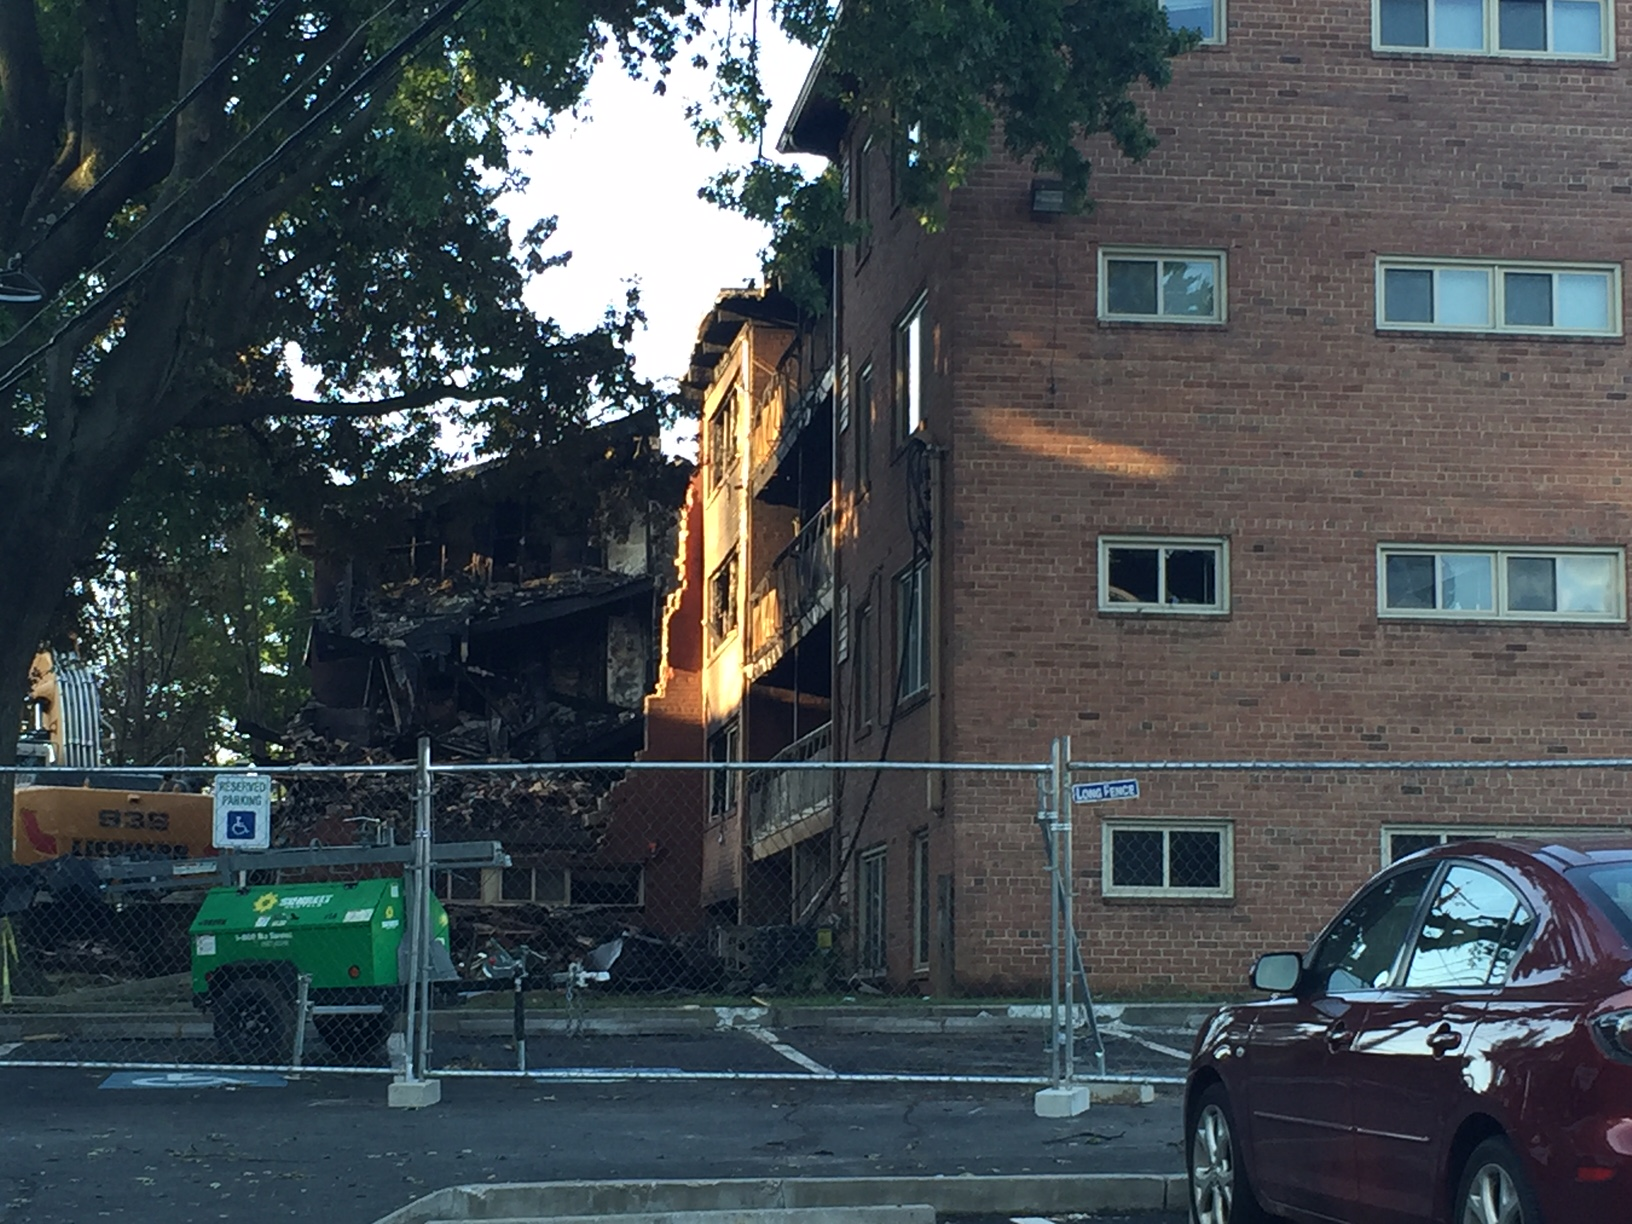 A third body was found on Friday, Aug. 12 in the rubble caused by a fire and explosion in a Silver Spring apartment complex. (WTOP/Dennis Foley)